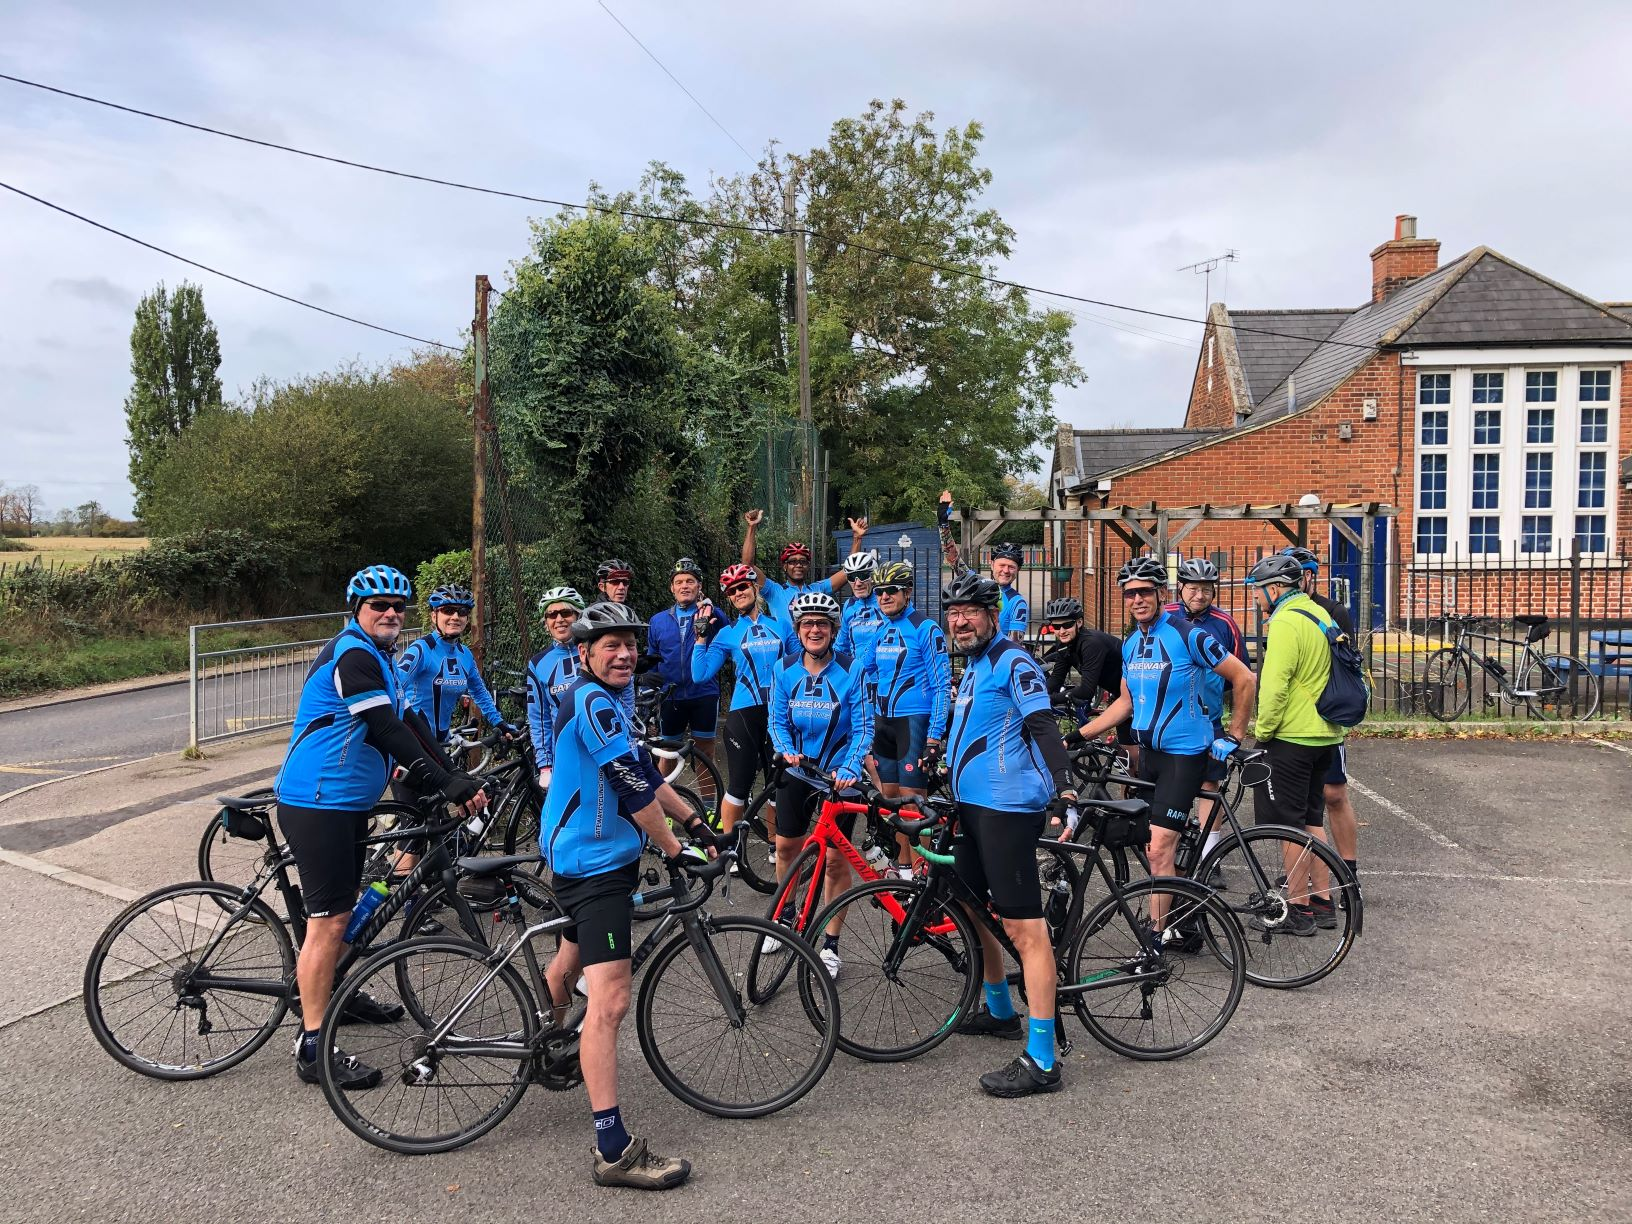 Charity Ride in aid of Prostate Cancer